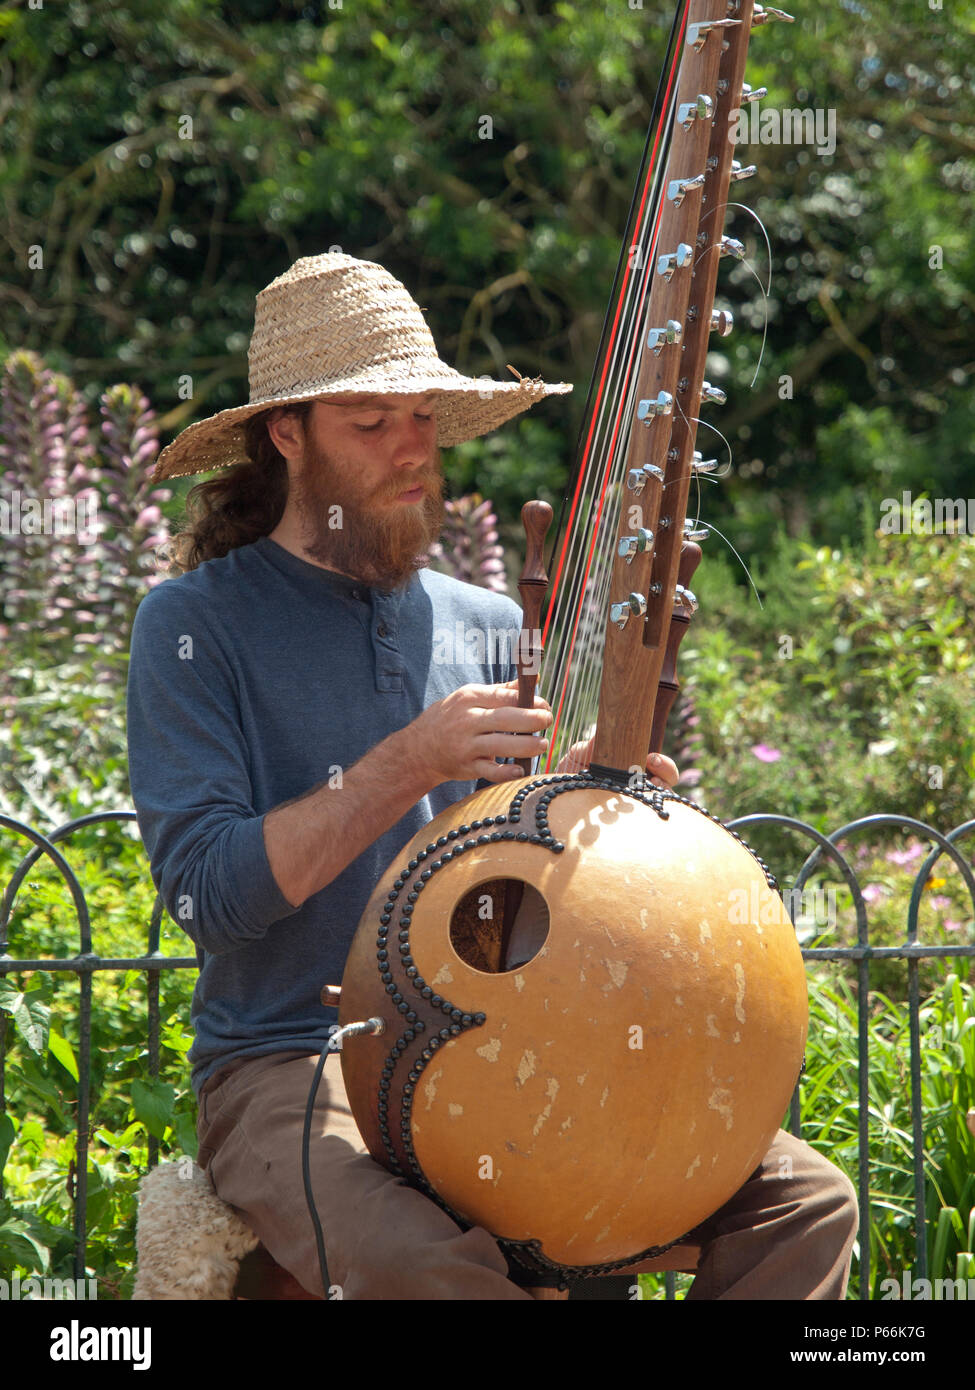 Busking in Pavilion Gardens, Brighton a man plays an African harp - Stock Image